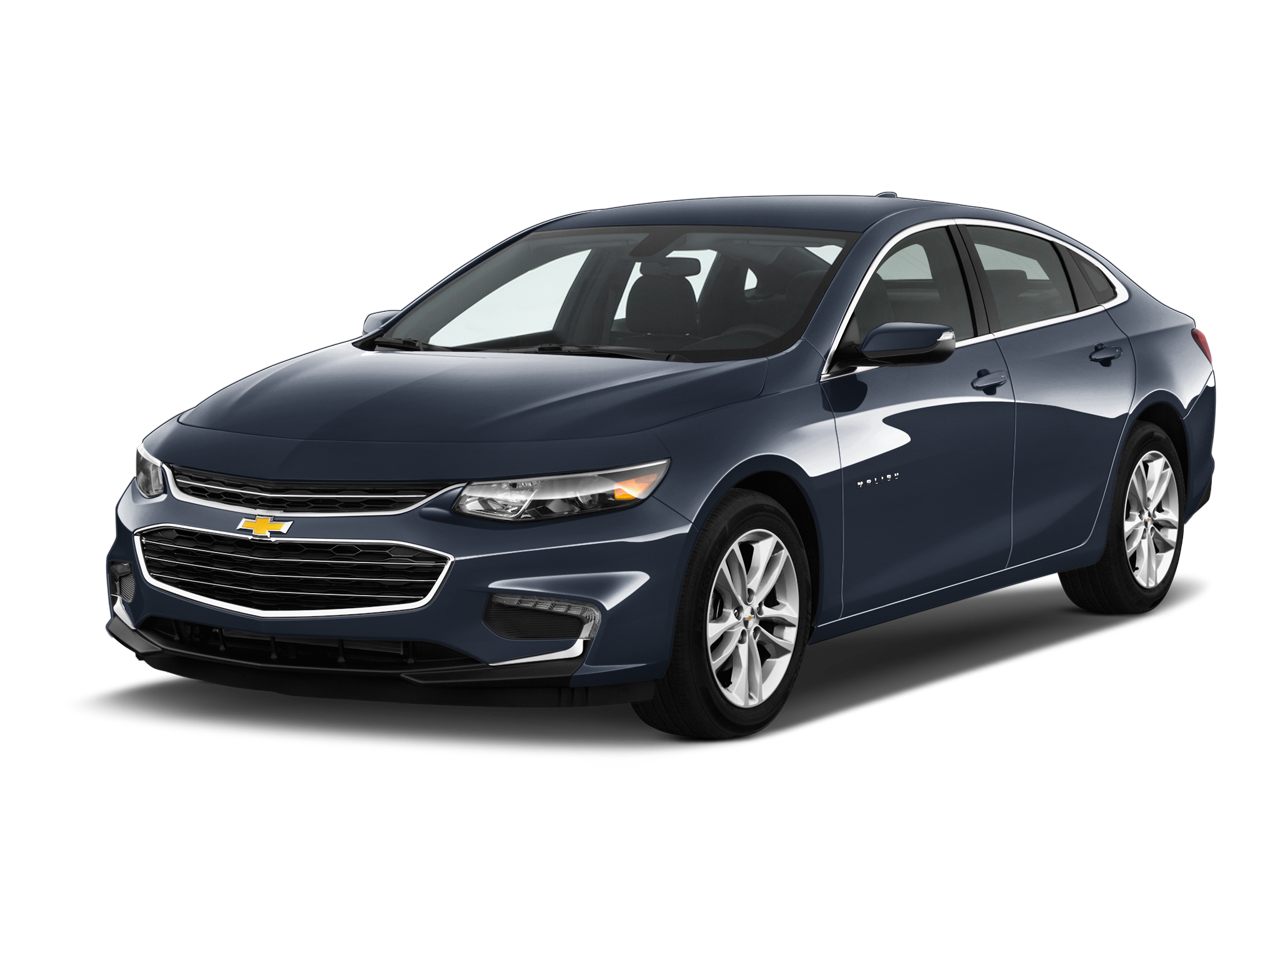 chevrolet malibu 2010 chevrolet malibu price photos. Black Bedroom Furniture Sets. Home Design Ideas